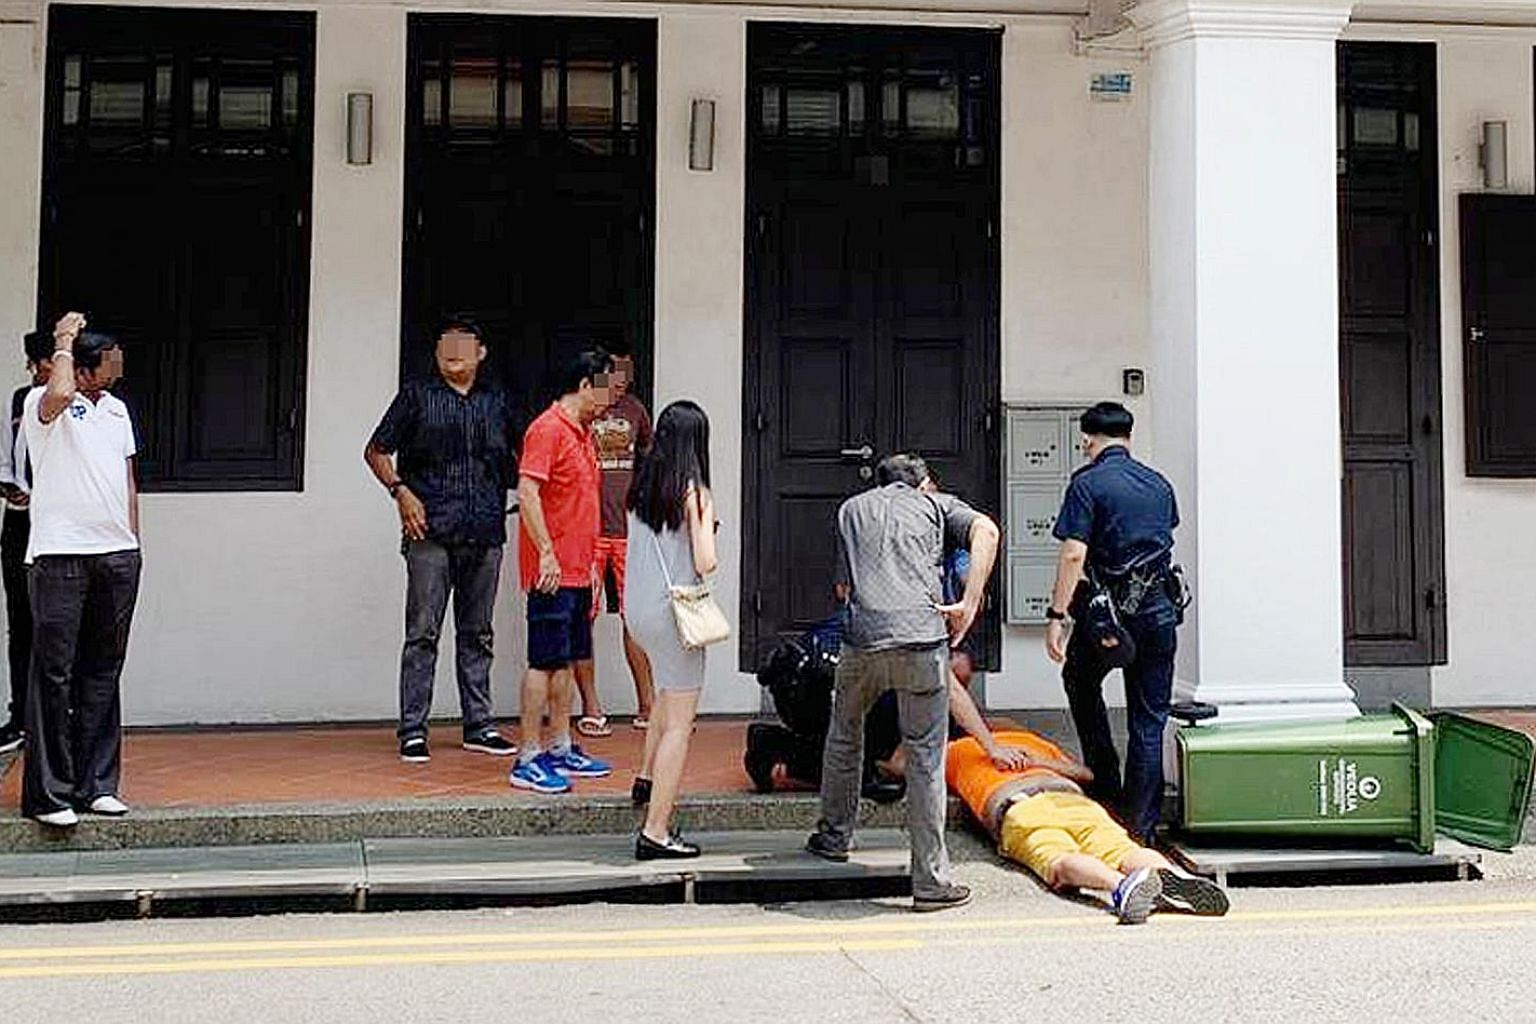 A man who allegedly took upskirt pictures died last year after he was chased and restrained by passers-by. PHOTO: SHIN MIN DAILY NEWS